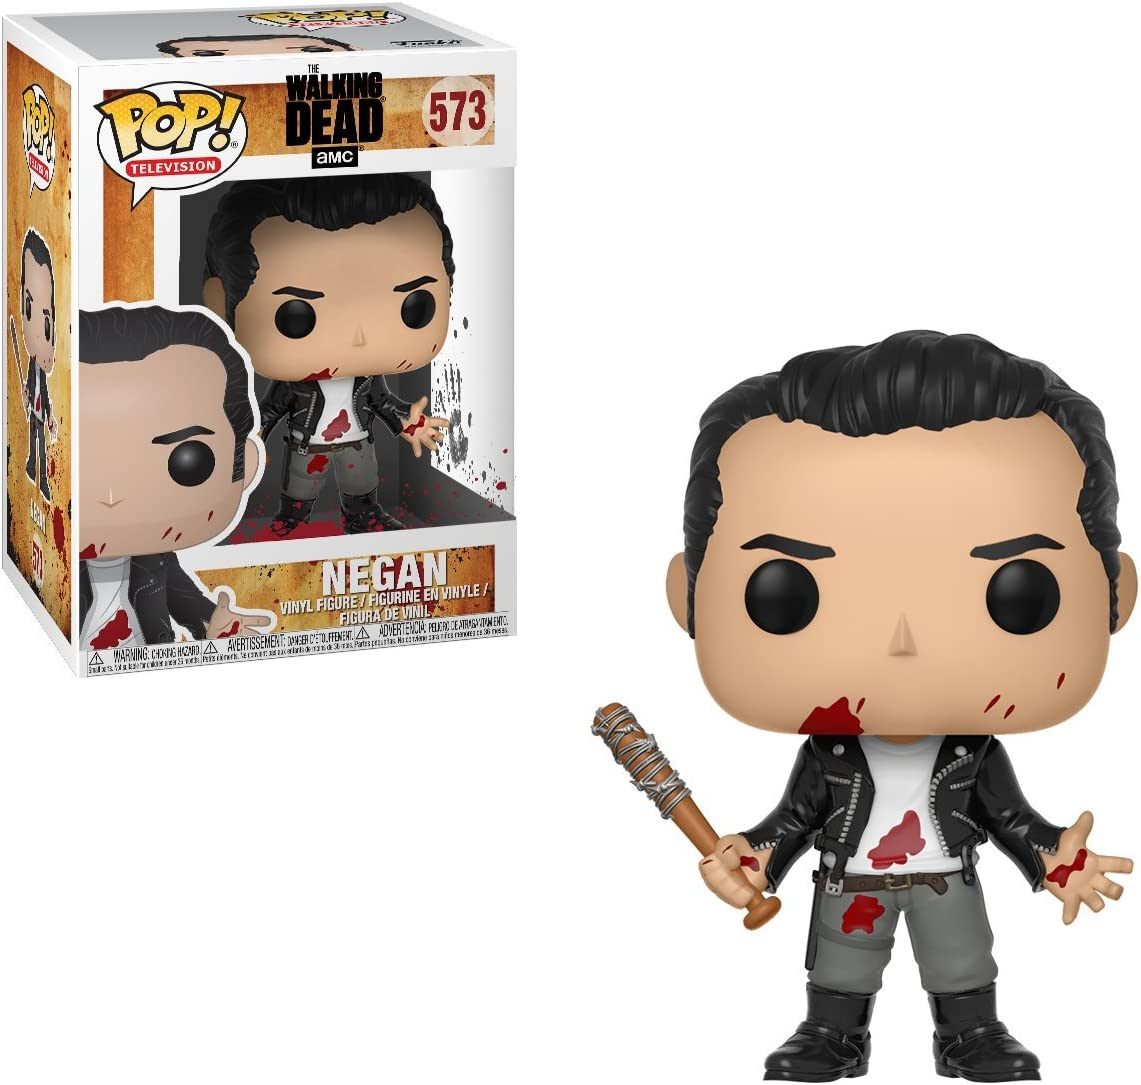 BRAND NEW FUNKO POP FIGURE 16 DESIGNS TO CHOOSE FROM THE WALKING DEAD